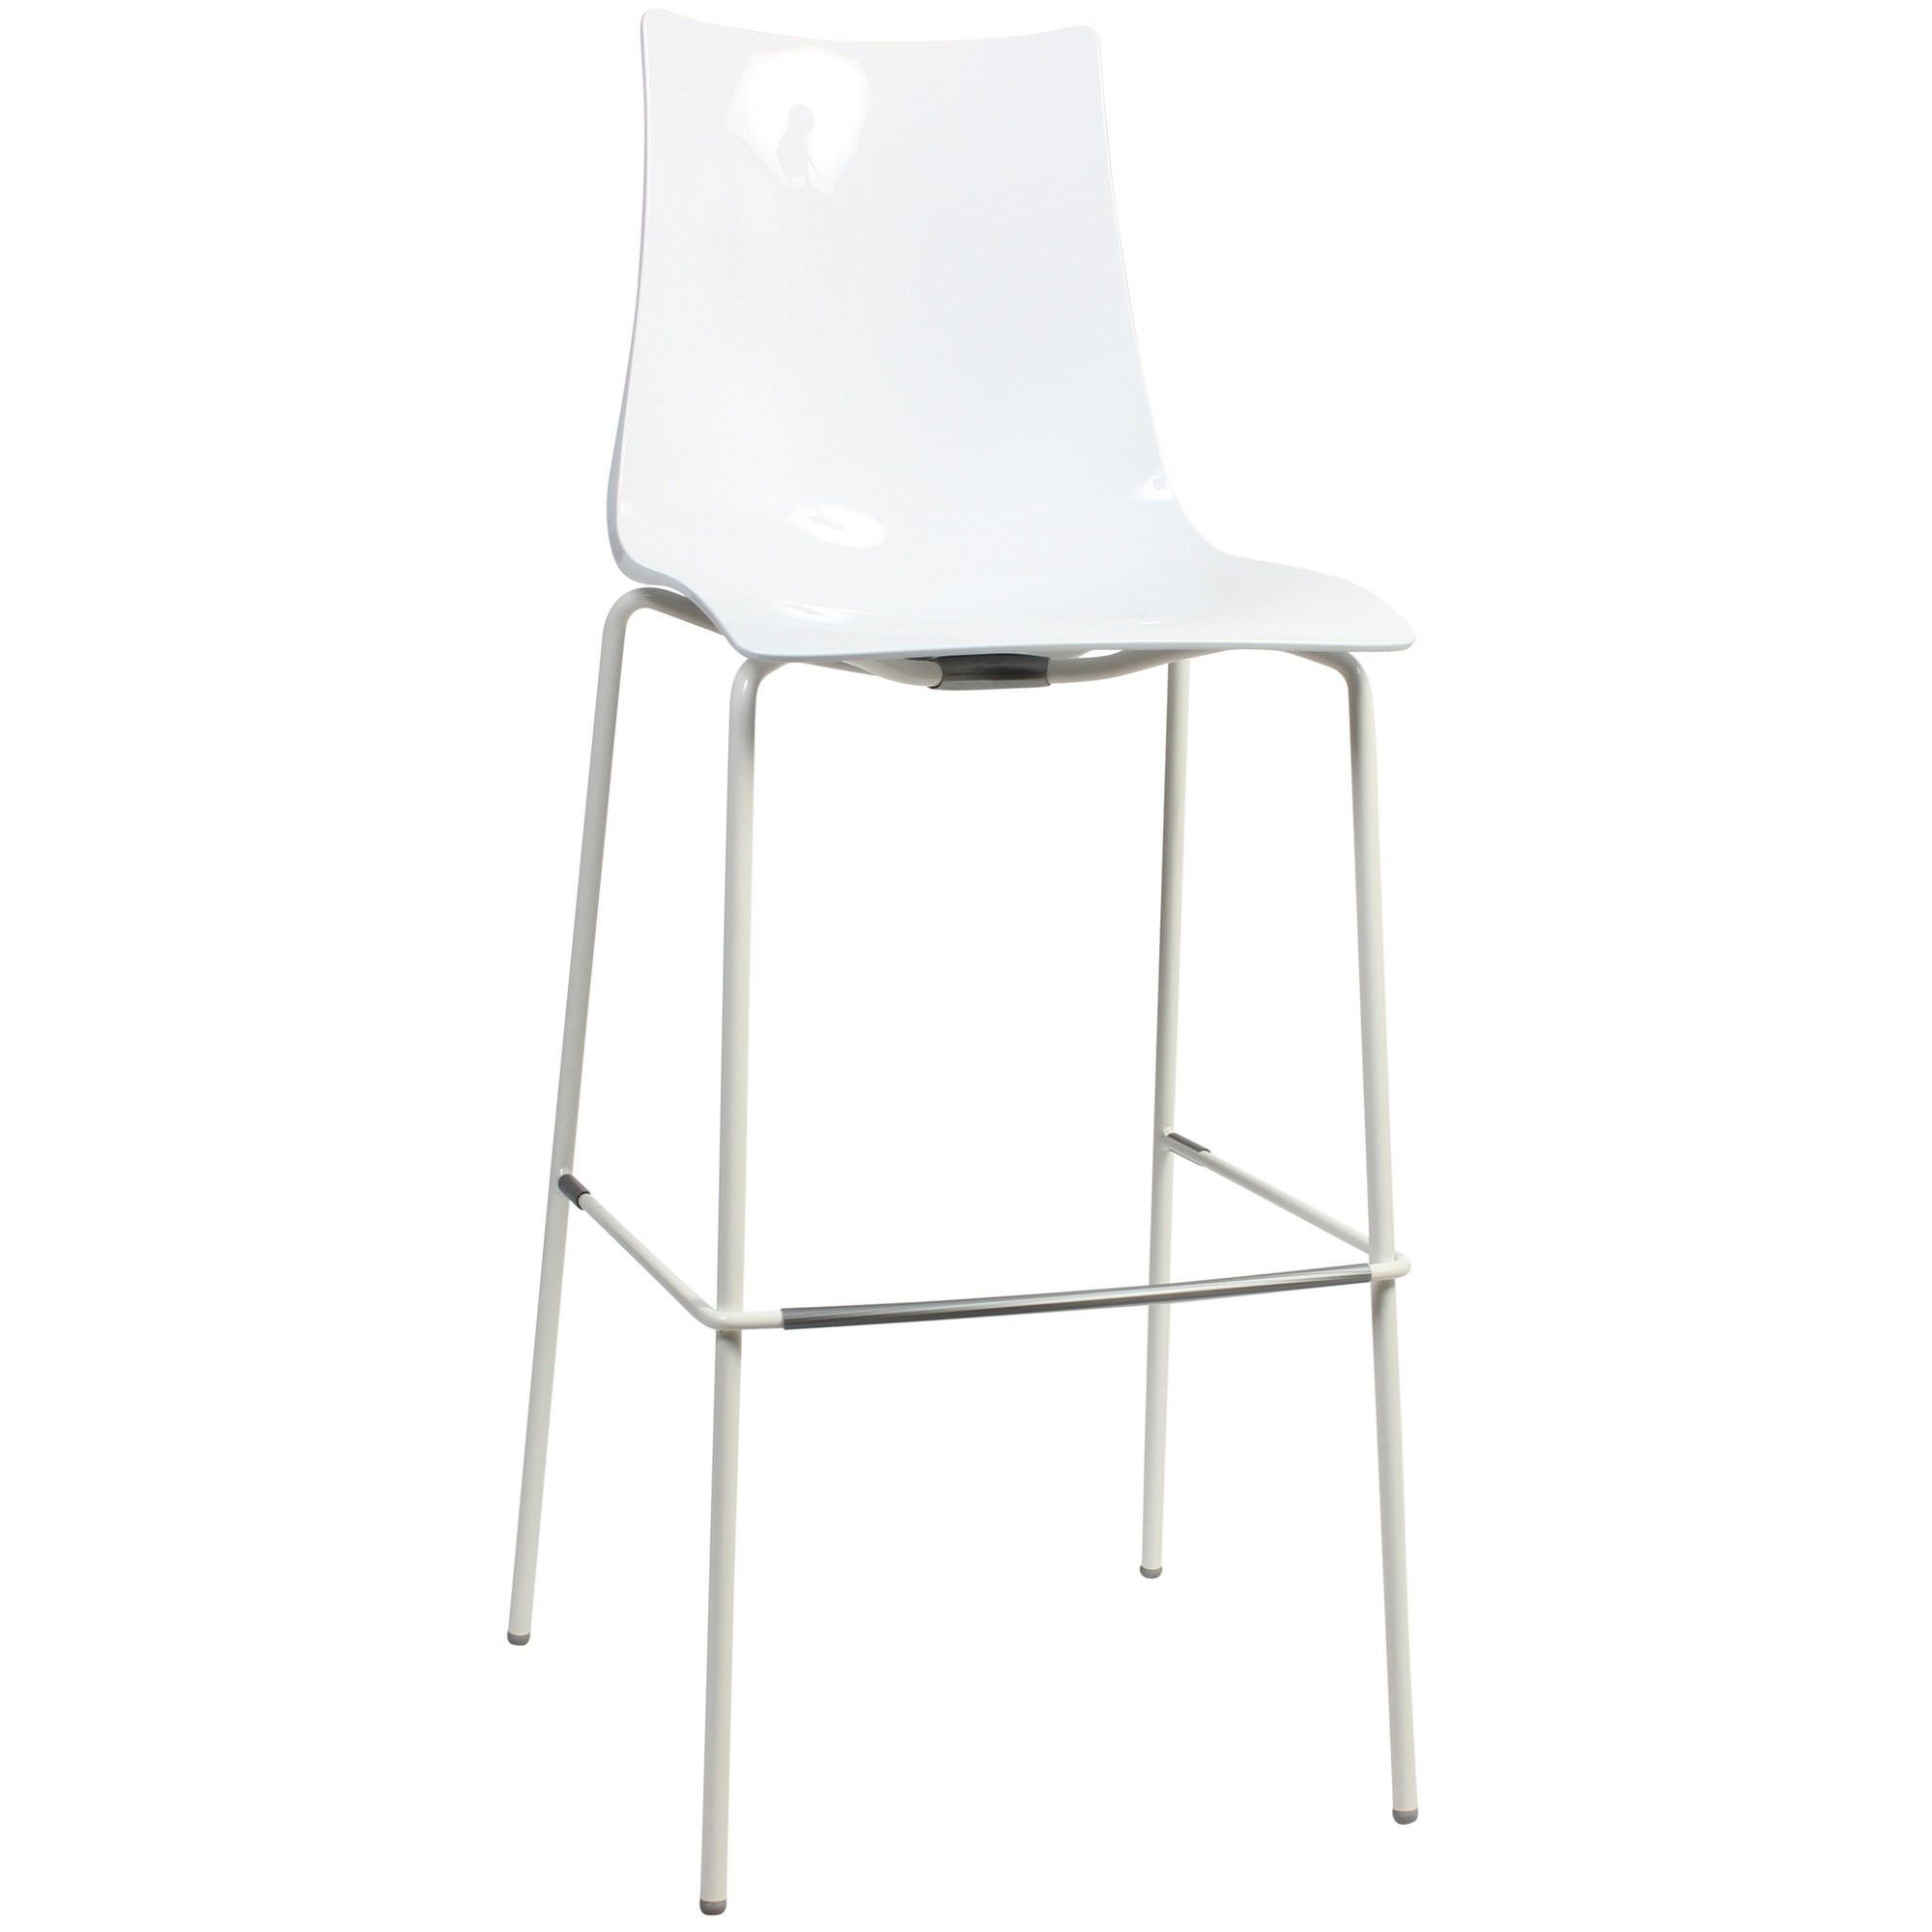 Zebra Italian Made Commercial Grade Indoor/Outdoor Bar Stool, Metal Leg, White